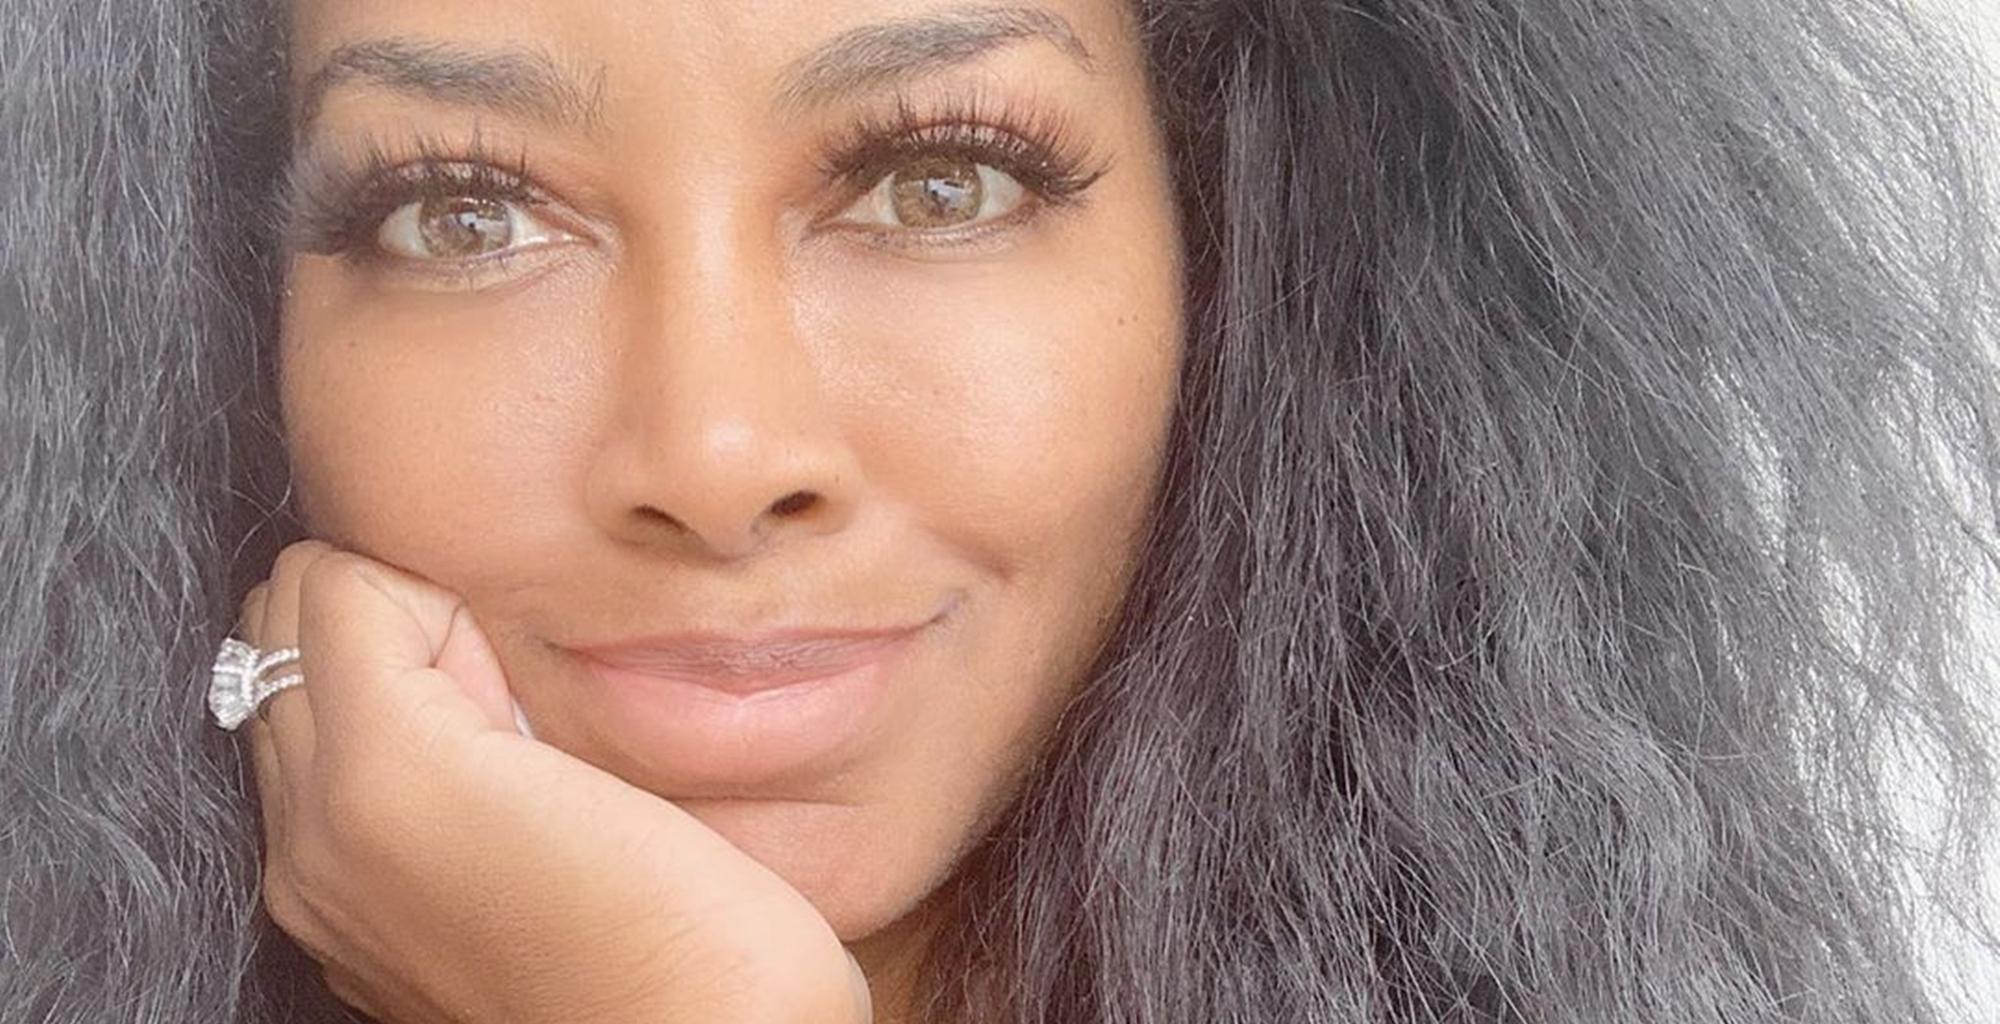 Kenya Moore Sets The Internet Ablaze With Photo Of Her Hard Abs